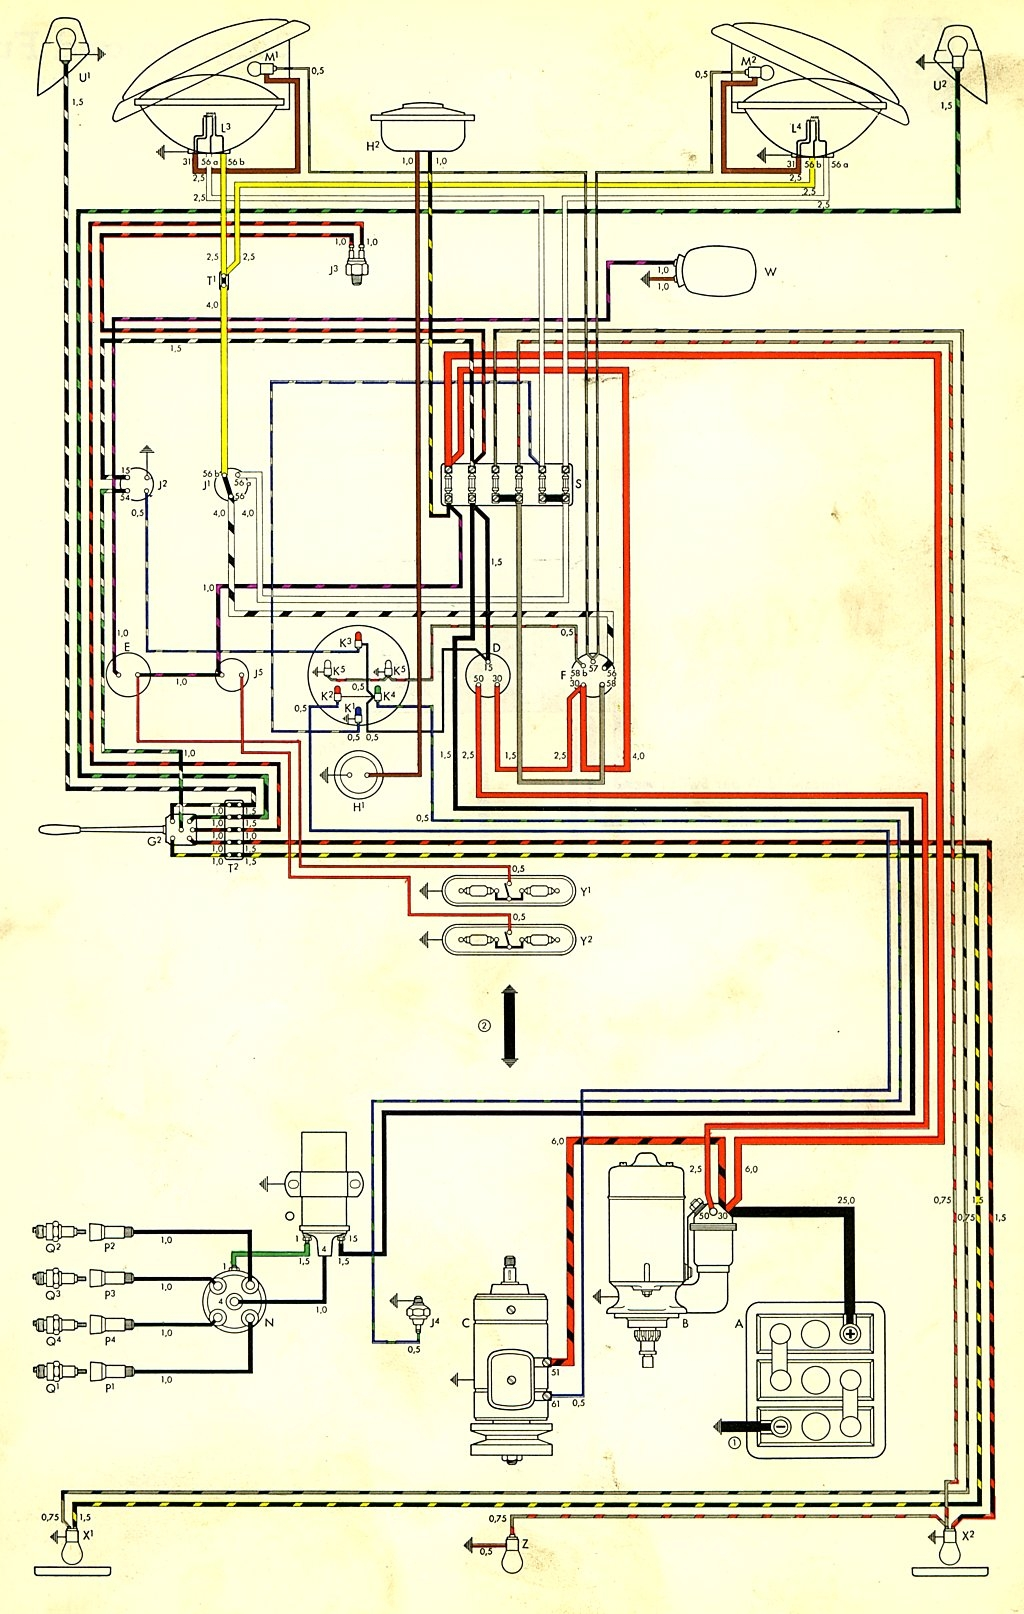 2001 vw beetle wiring diagram Collection-bus 59 USA 8-f